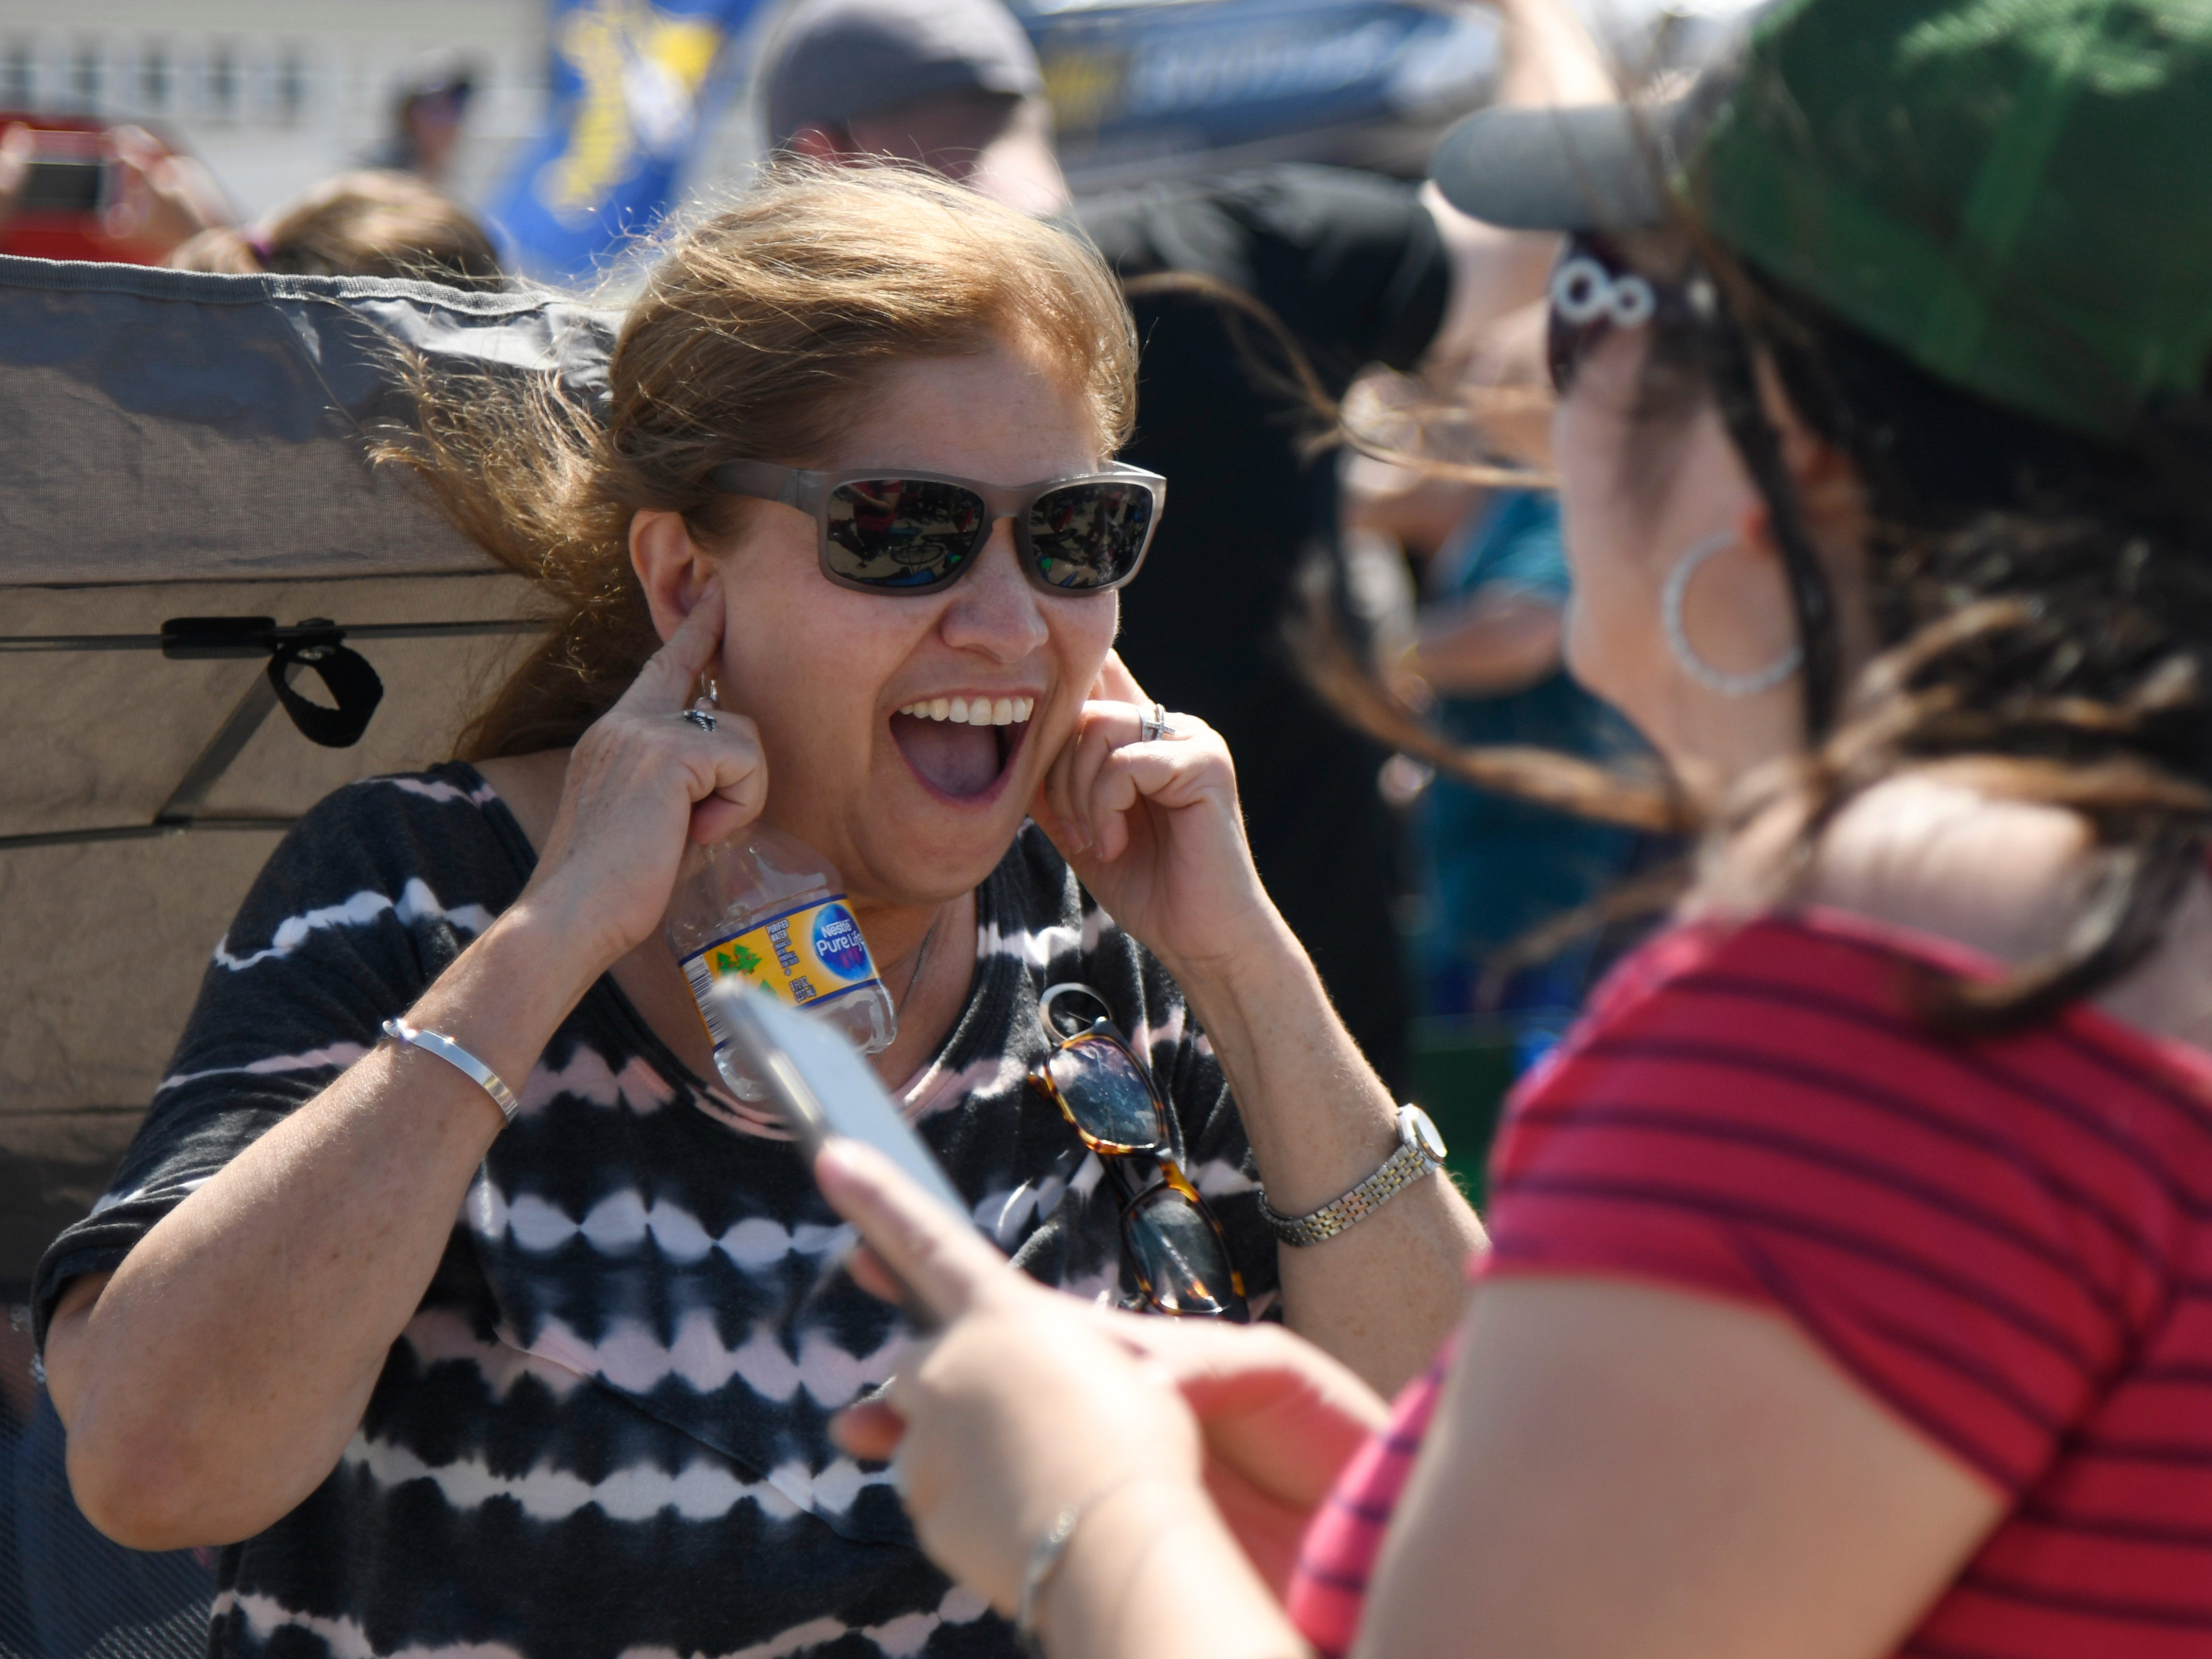 Mary Seenz reacts and plugs her ears while the Blue Angels perform during the Wings Over South Texas Air Show, Saturday, April 13, 2019, at NAS Corpus Christi. Seenz, whose husband is retired from the Navy, came from Rio Grande City to watch the show.